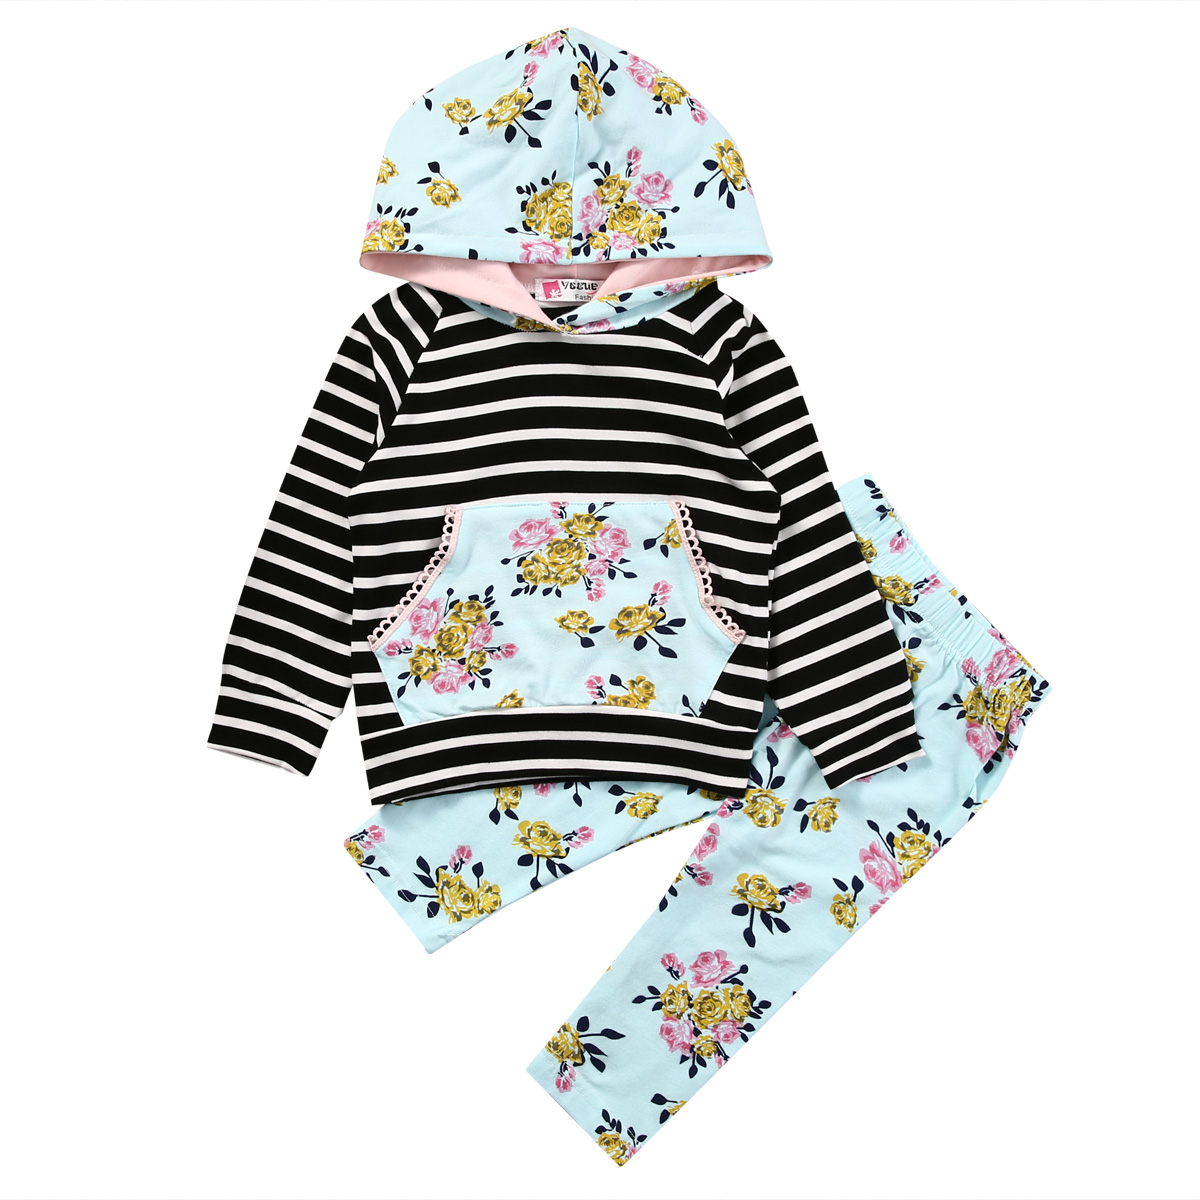 6a8f8c2c Autumn Spring Newborn Infant Baby Girl Clothes Long Sleeve Striped Hoodie  Tops+Floral Pants Leggings 2Pcs Outfits-in Clothing Sets from Mother & Kids  on ...